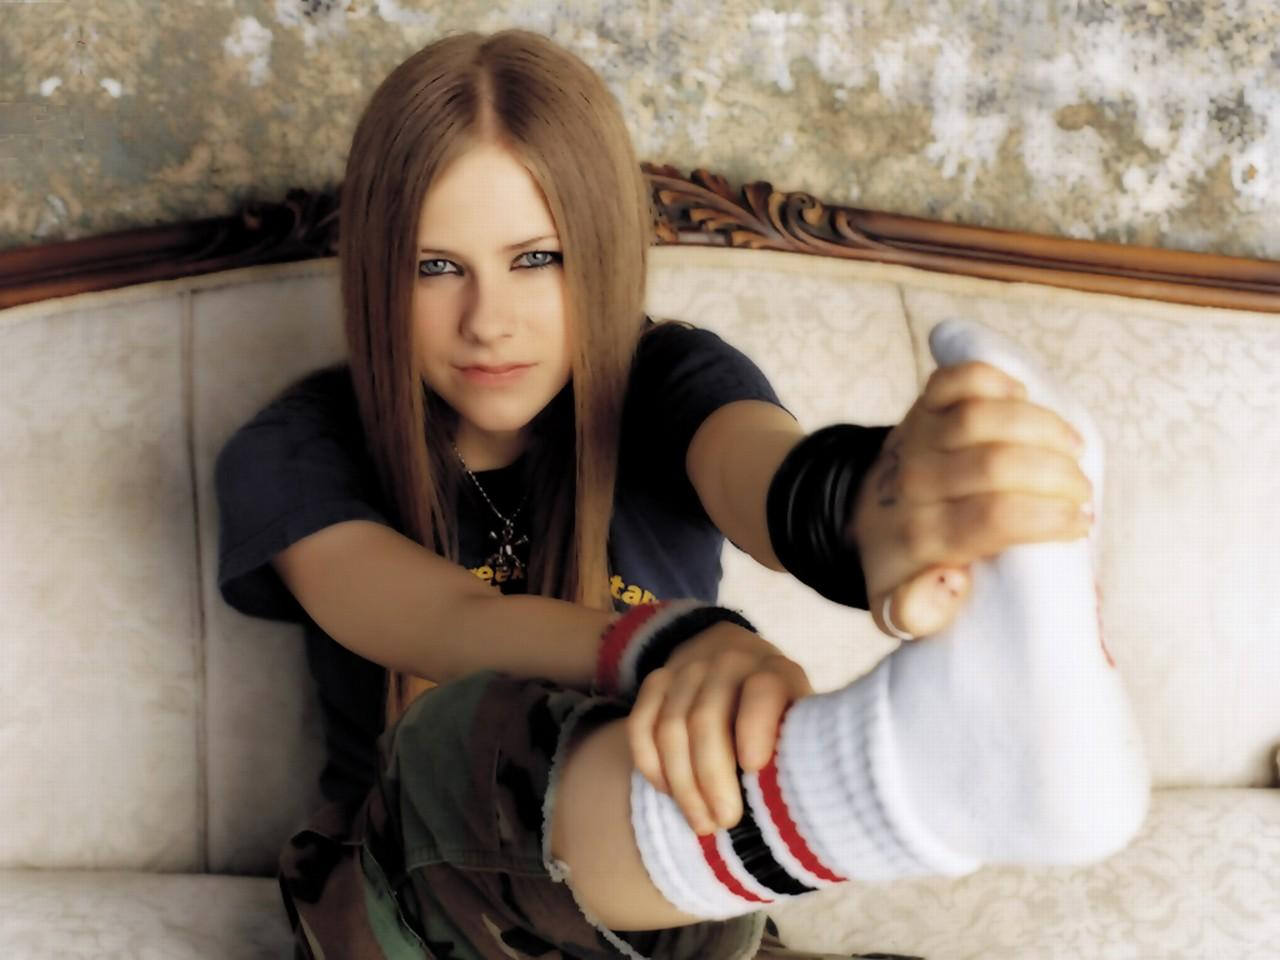 Avril lavigne hot pictures photo gallery wallpapers avril lavigne voltagebd Choice Image